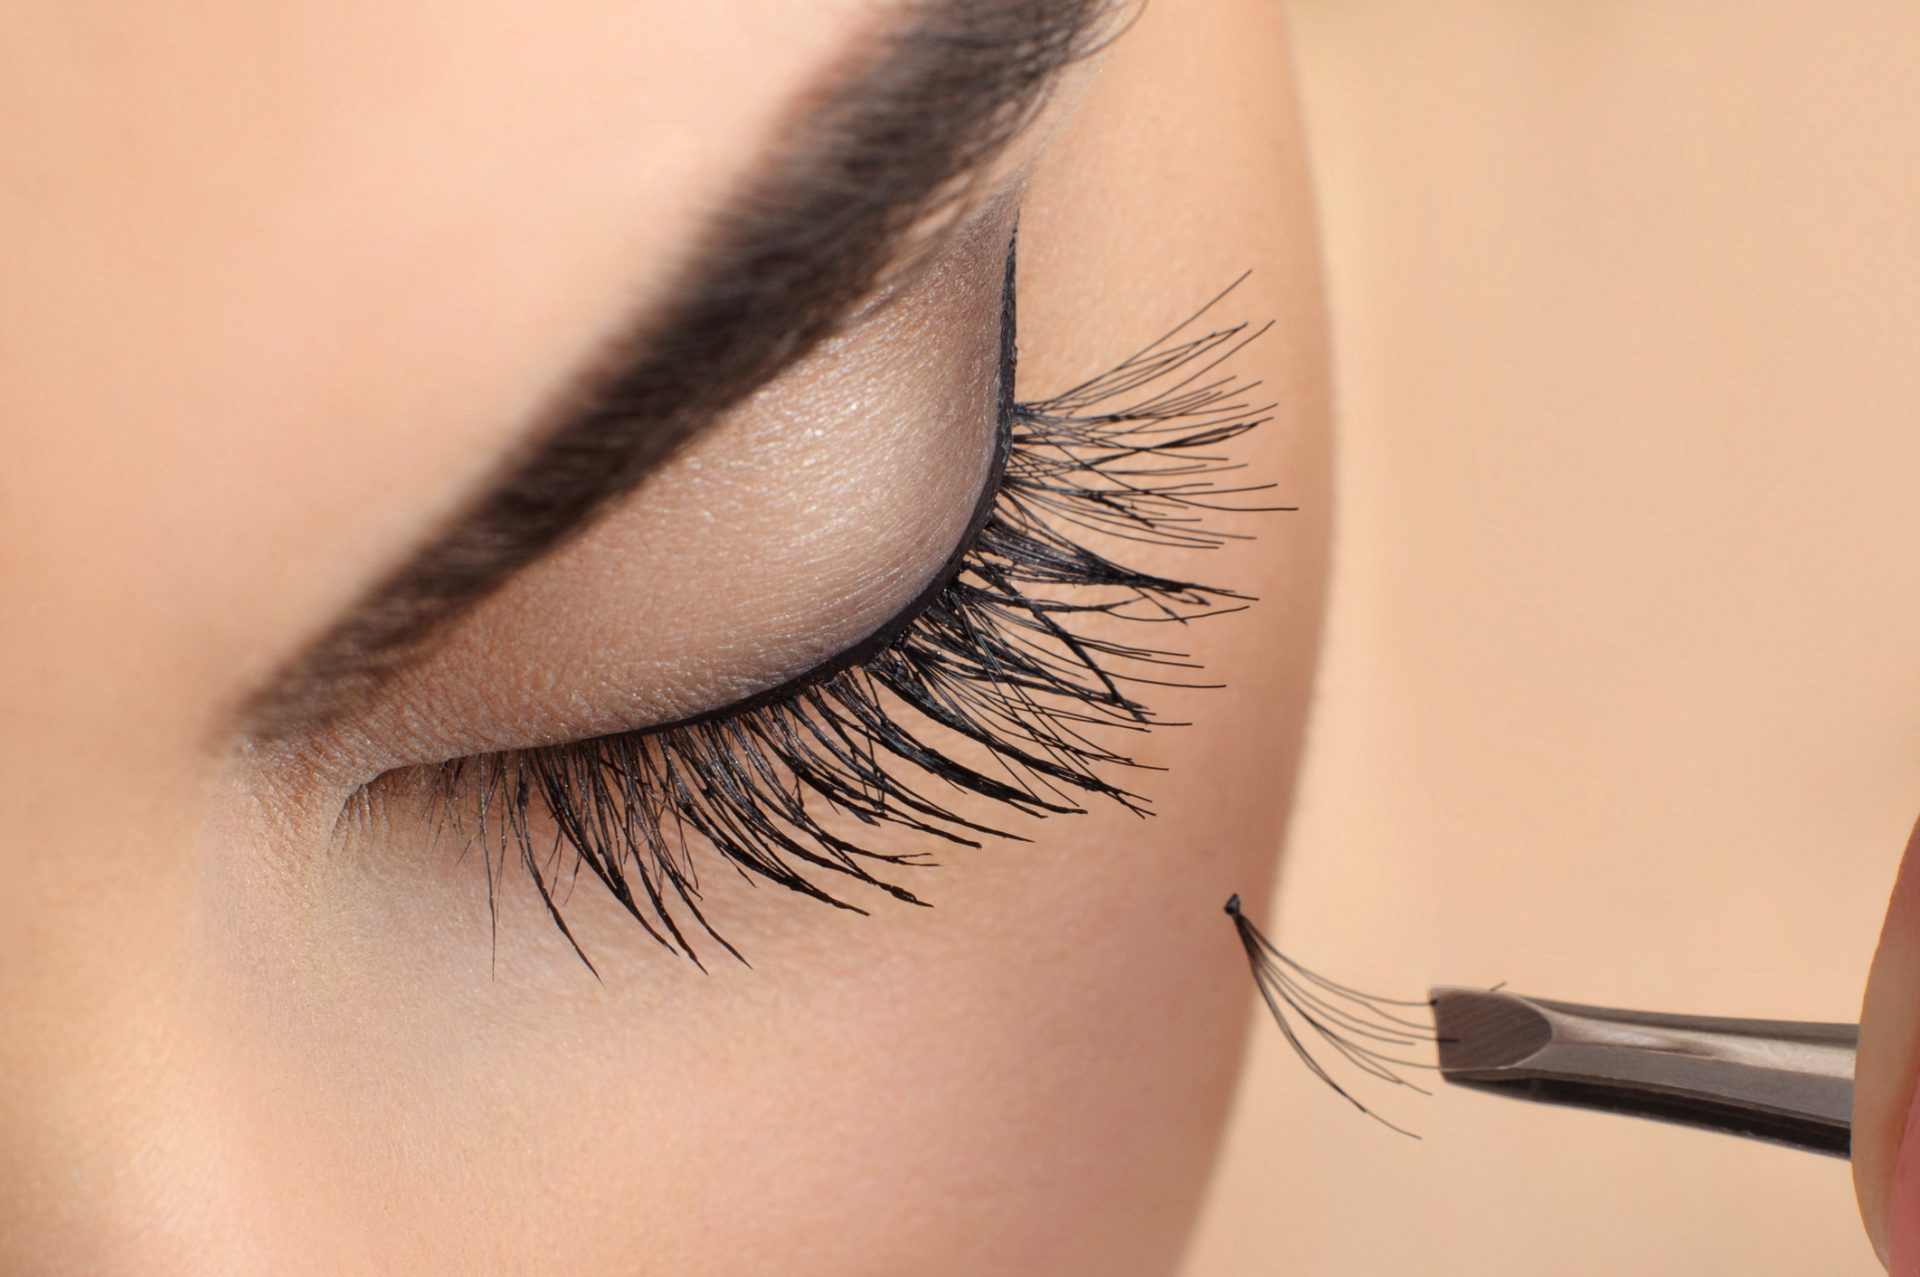 5 best places for eyelash extensions in Singapore